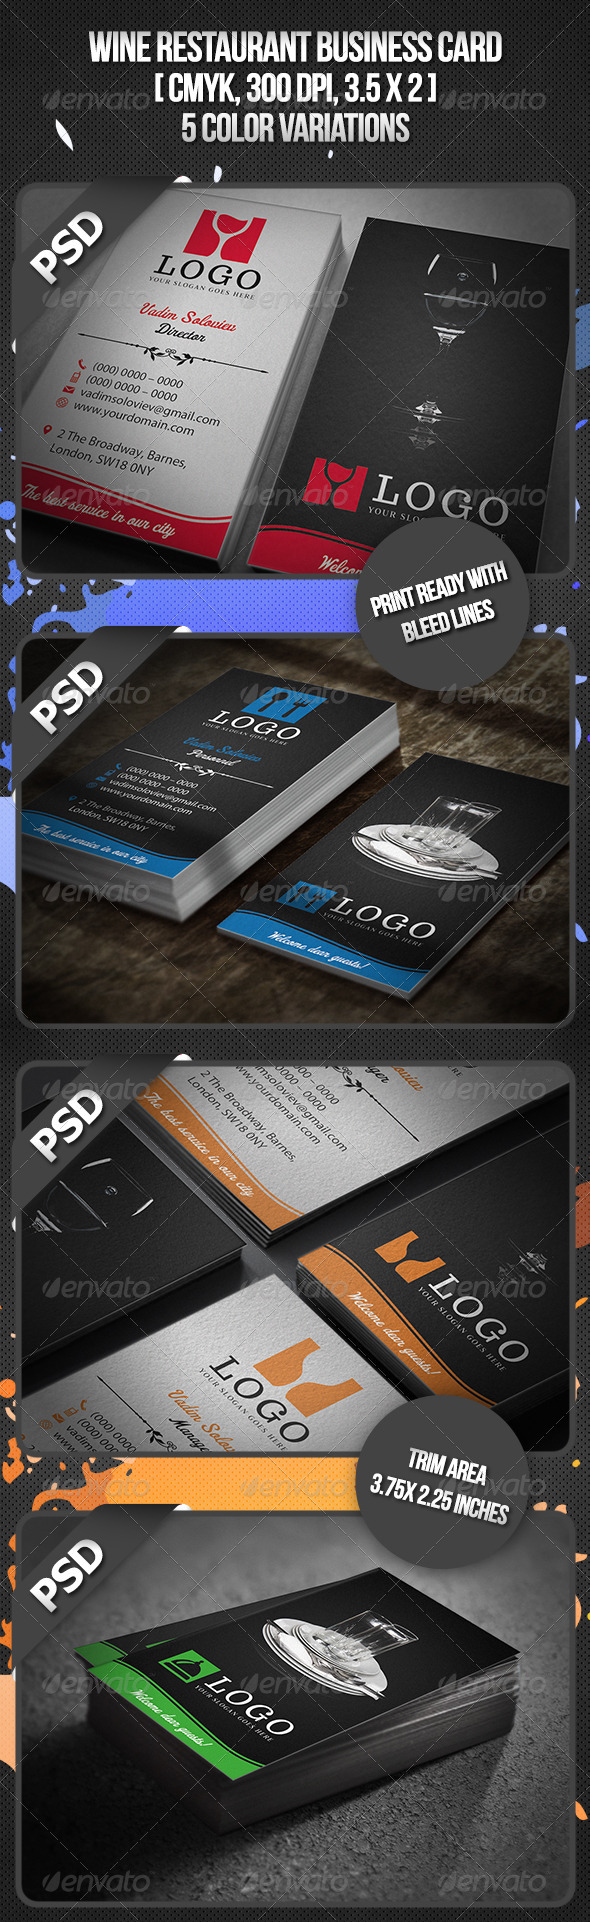 Wine Restaurant Business Card - Industry Specific Business Cards